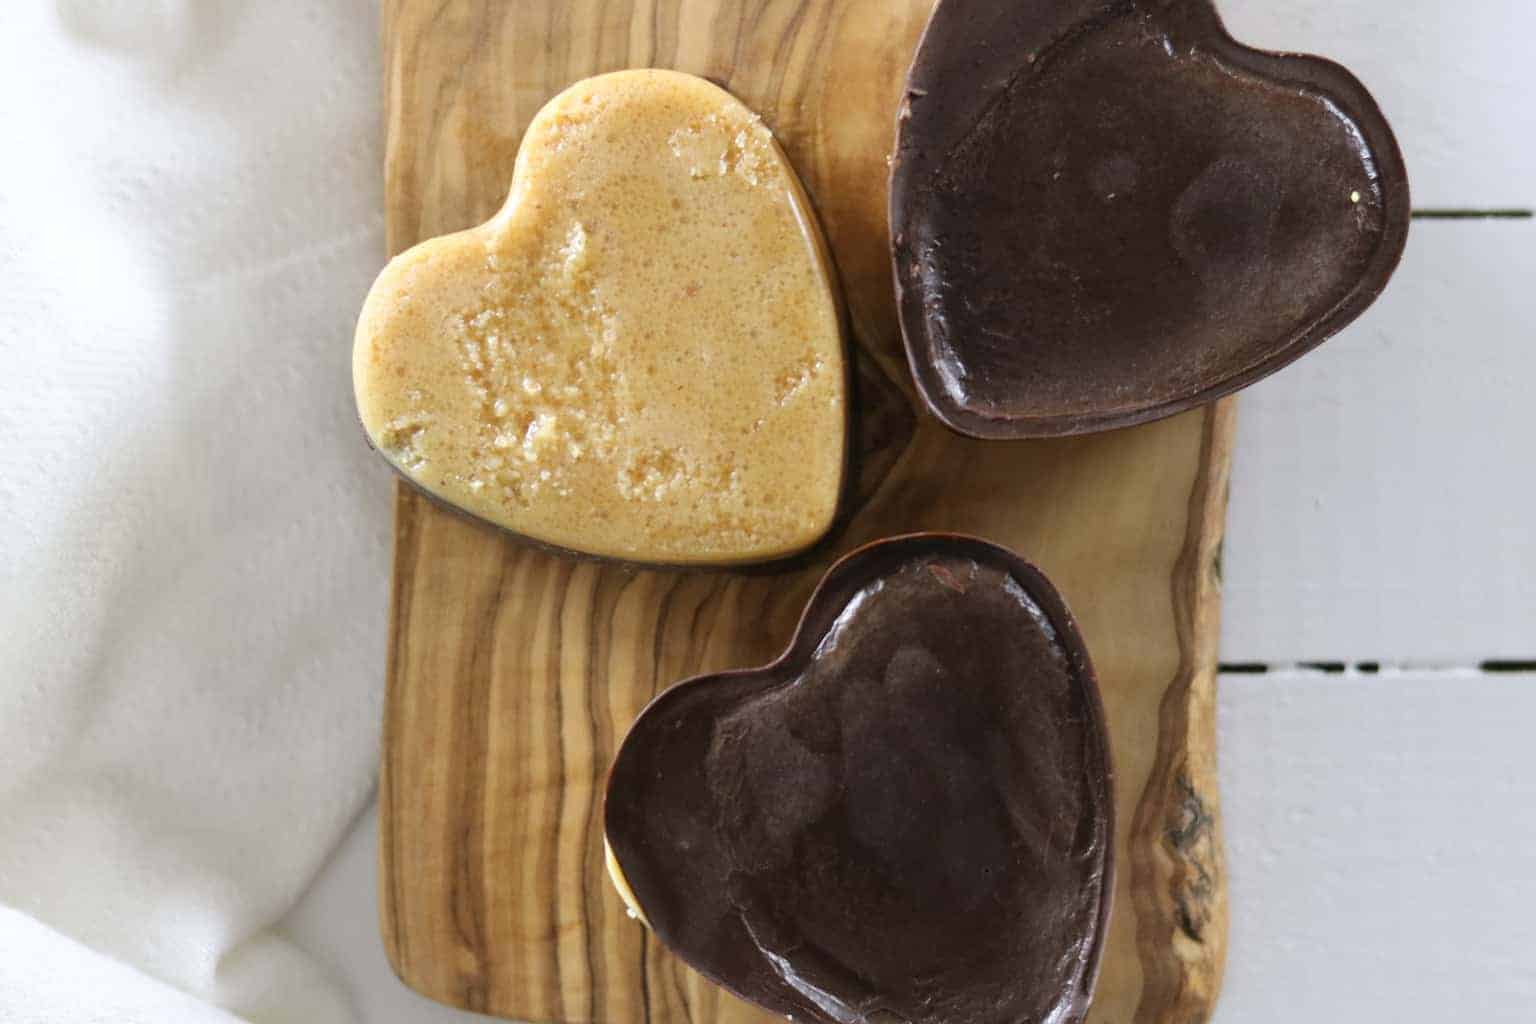 Paleo peanut butter chocolate hearts on white shiplap.